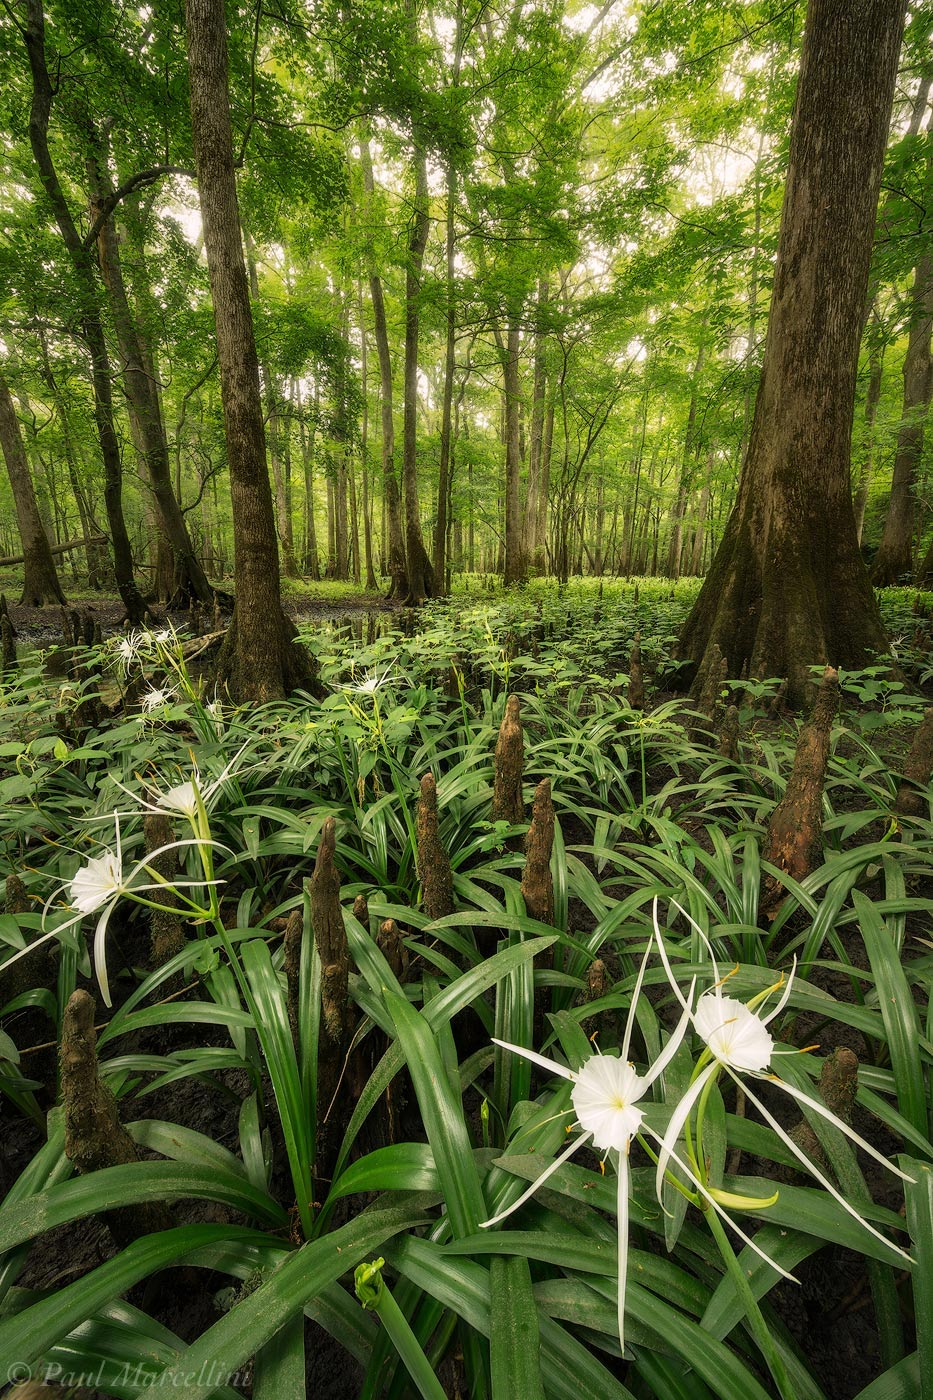 Chipola River, Floodplain, Florida Caverns State Park, FL, lilies, cypress, Florida Panhandle Spiderlily, Hymenocallis choctawensis, florida, north florida, nature, photography, photo